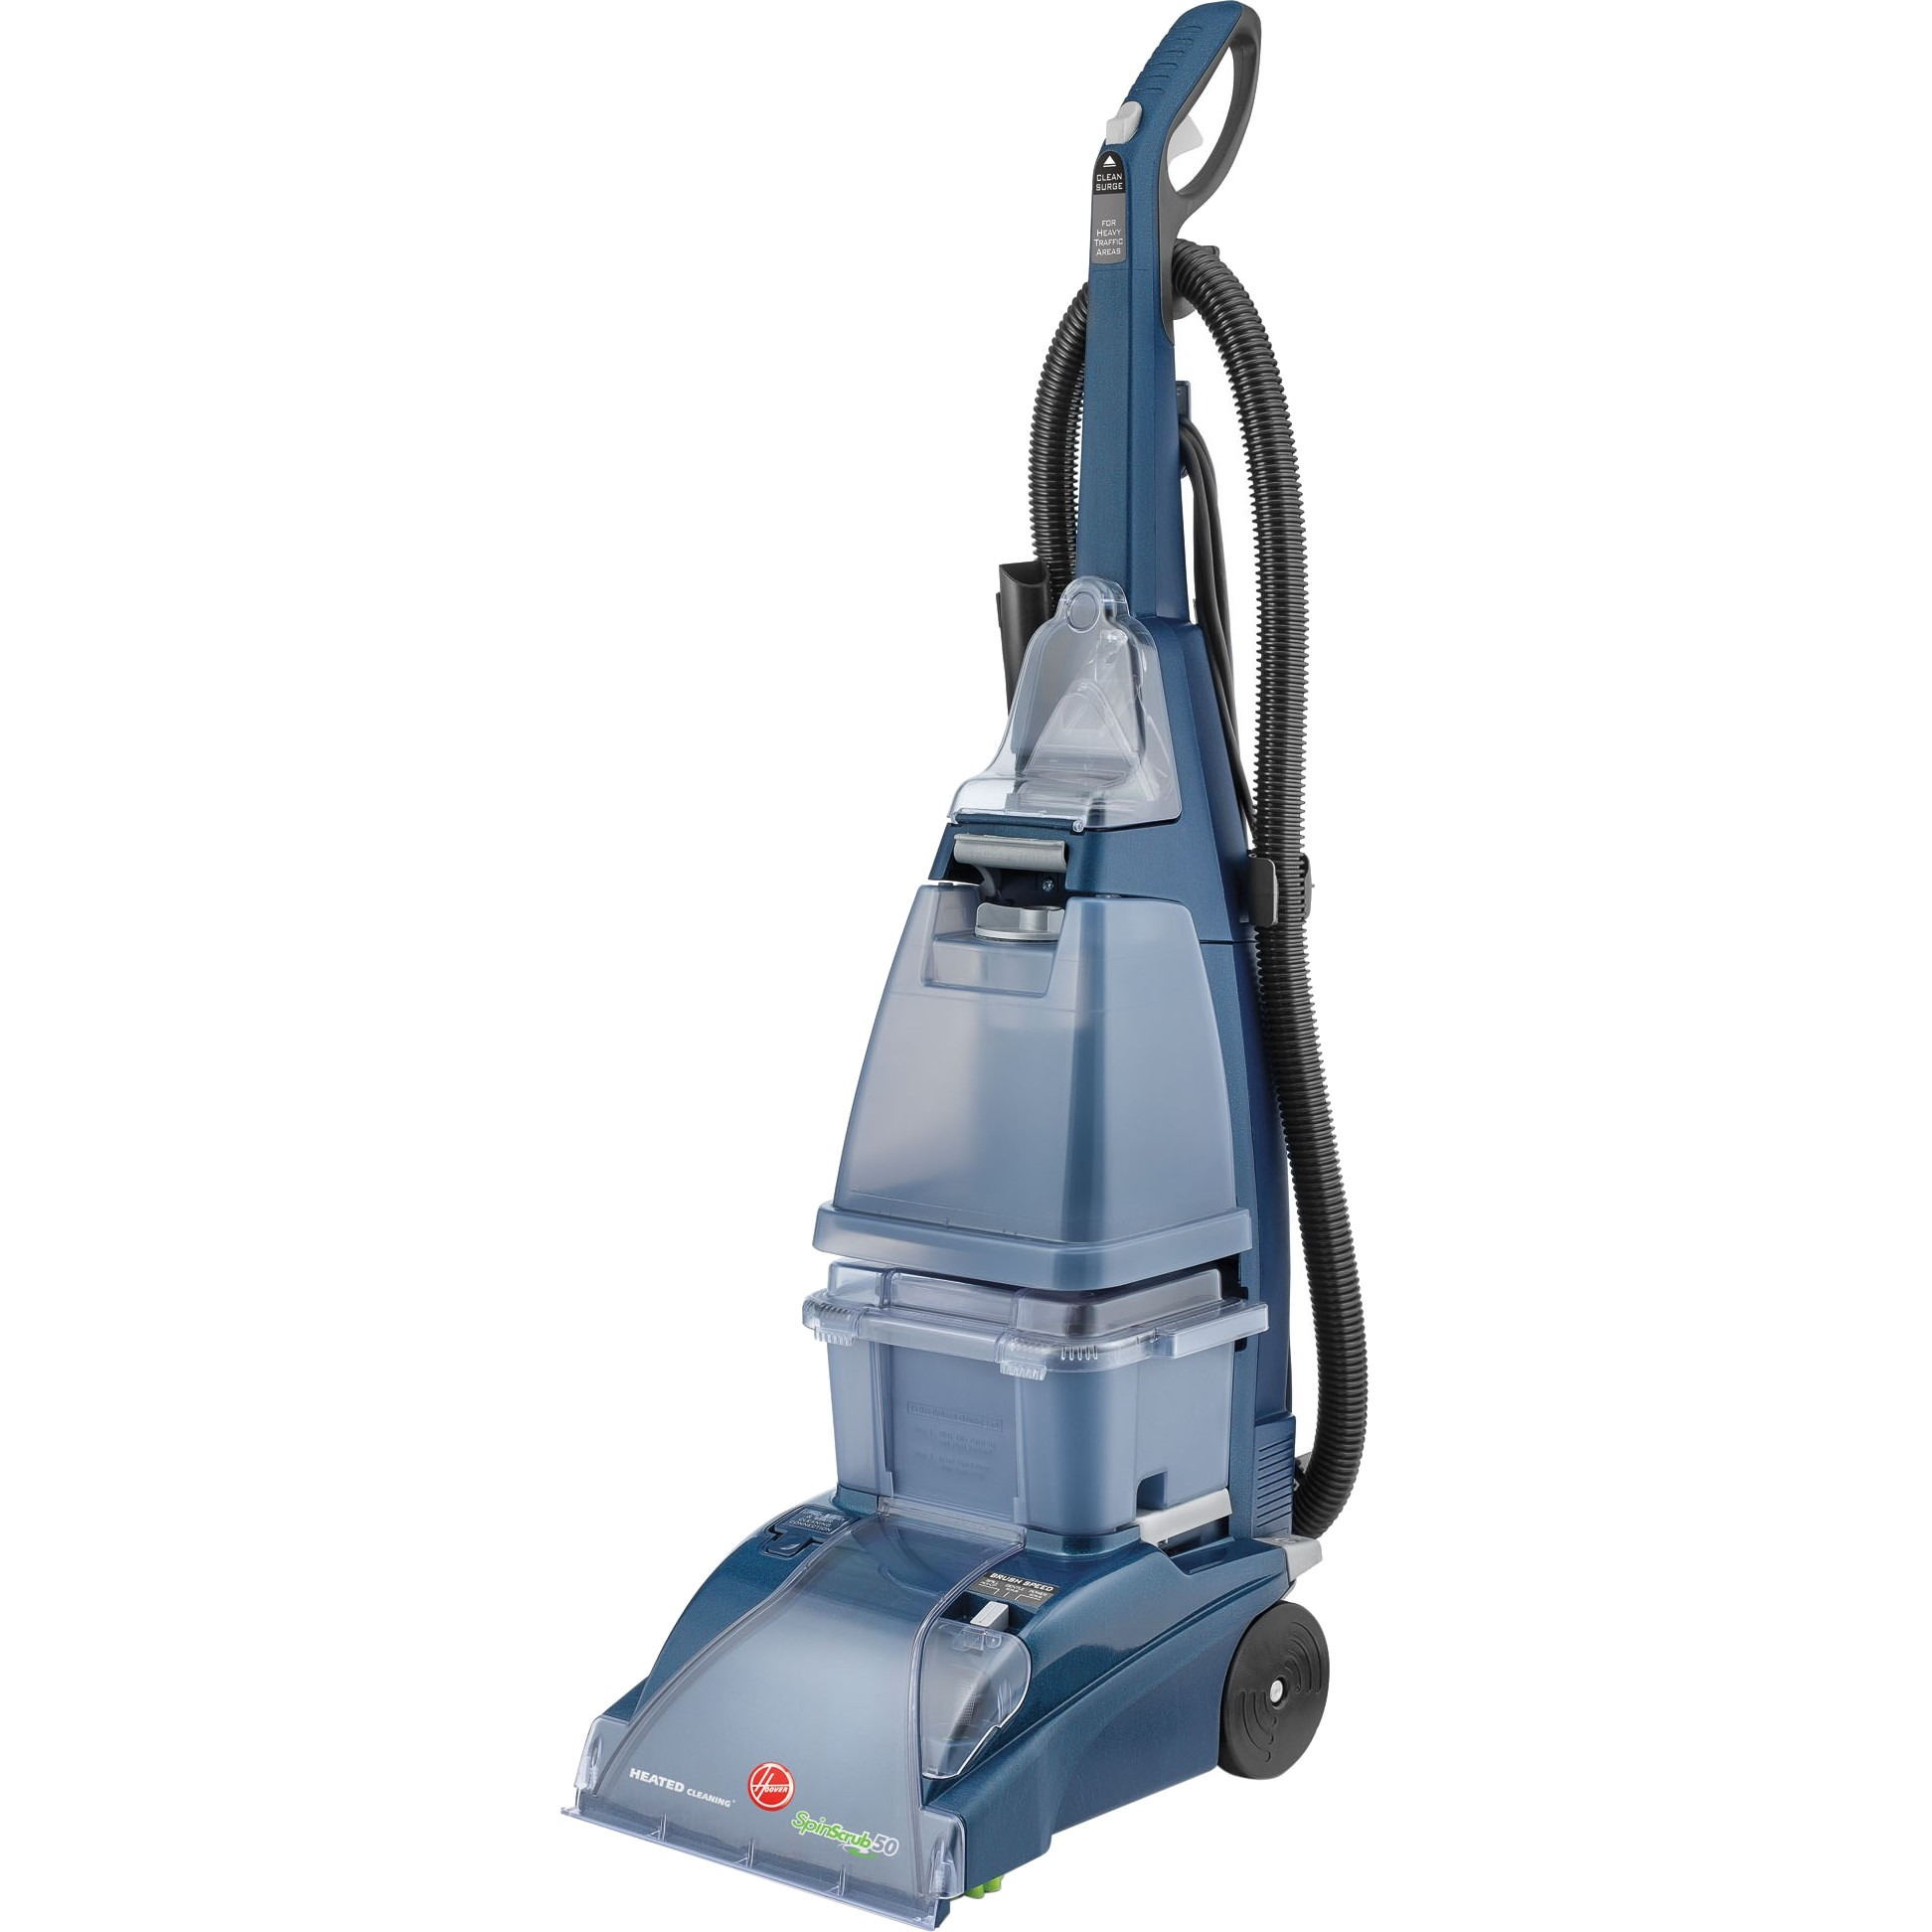 Carpet Cleaning Vacuum Hoover Steamvac Spinscrub With Cleansurge Carpet Cleaner F5915905